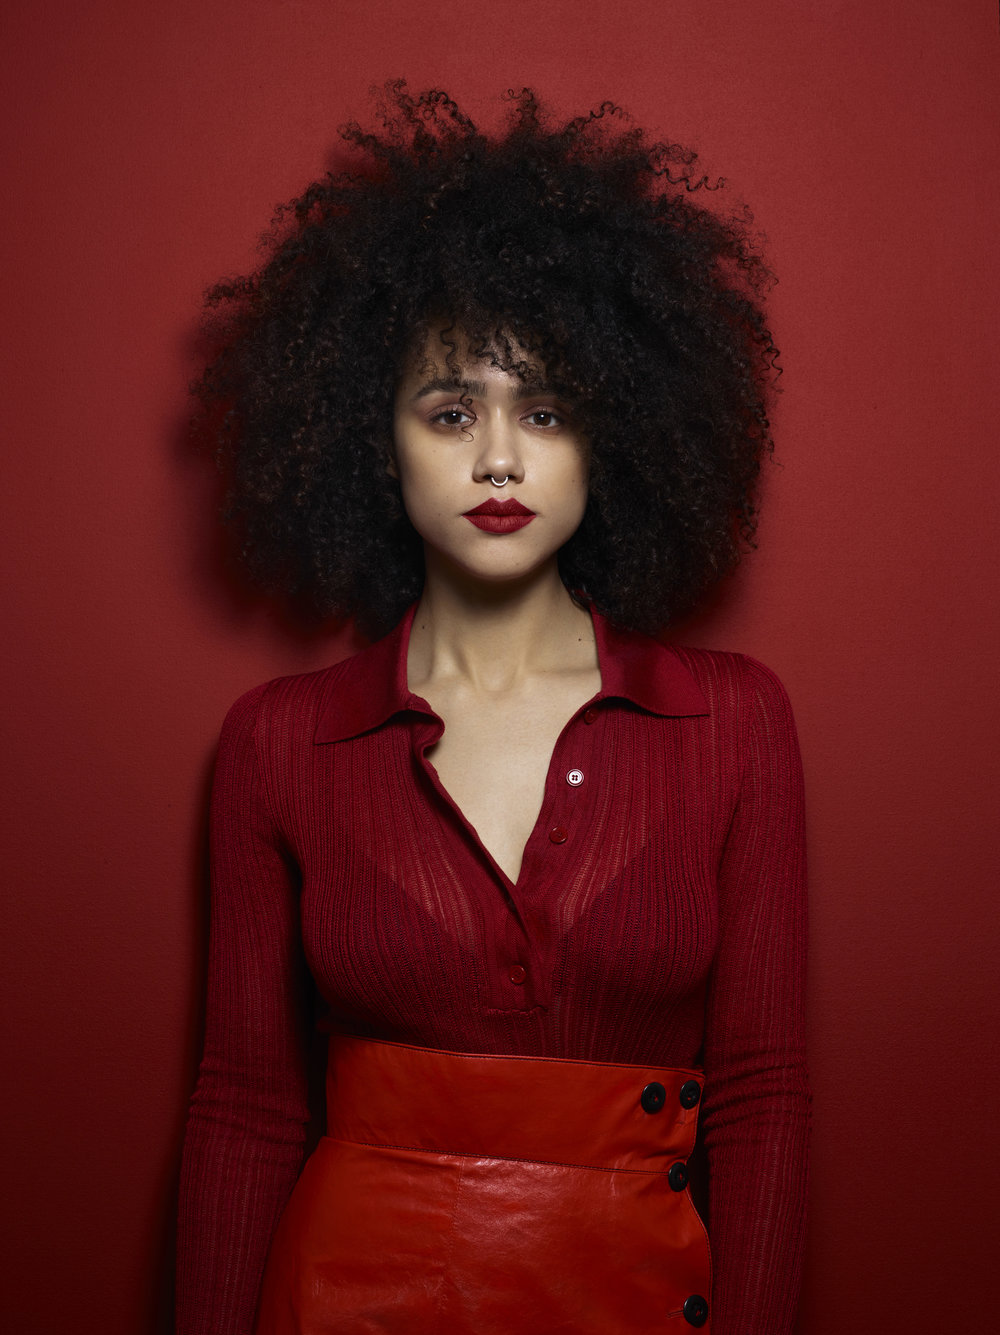 """Nathalie Emmanuel - We are excited to announce that actress Nathalie Emmanuel who has gained international recognition by starring as Missandei in the HBO fantasy and Emmy Award winning, series """"Game of Thrones"""" will be attending the CRIB Ball as our special guest. She has also played in hit Hollywood films starring alongside Vin Diesel in Furious 7 and Charlize Theron in Maze Runner: The Death Cure."""